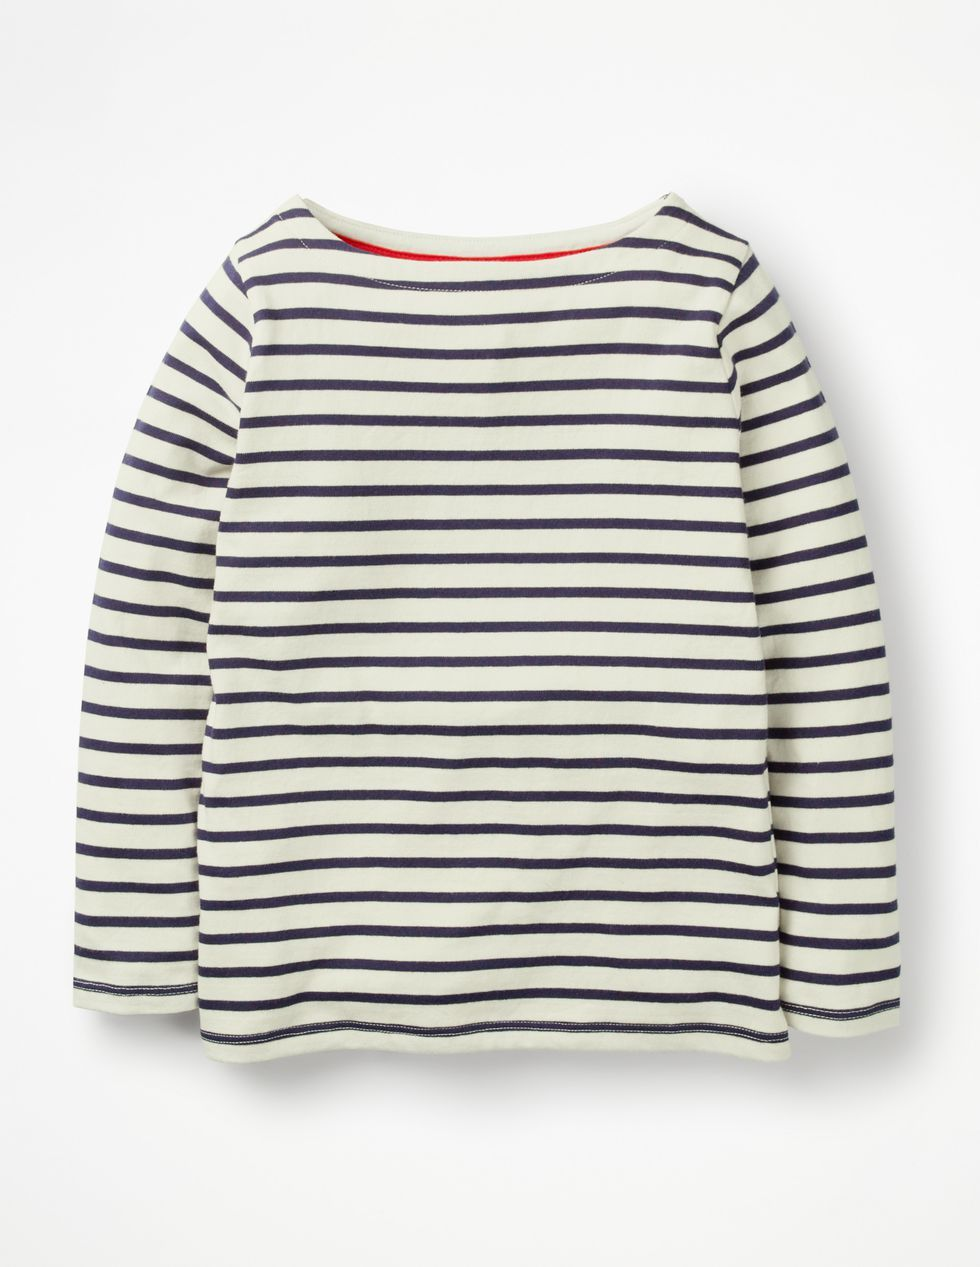 2c8550620a2cb3 Best striped shirts - 10 classic Breton tops to buy now